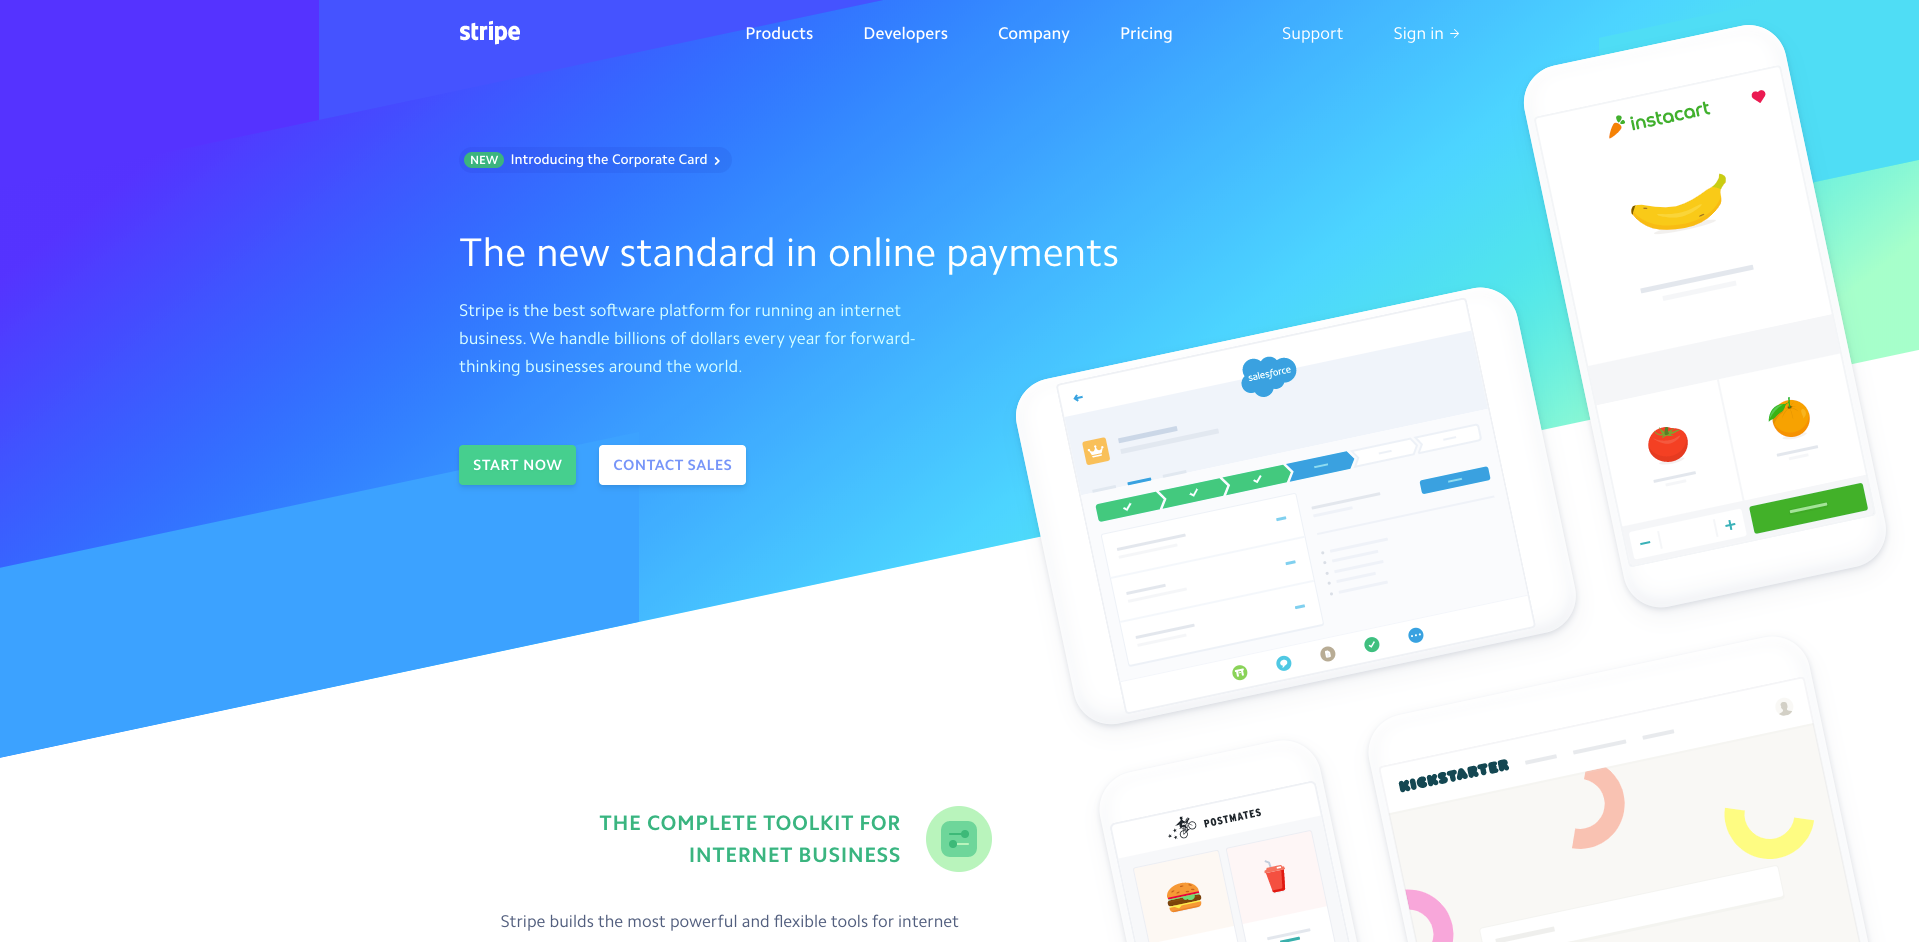 Stripe website homepage screenshot